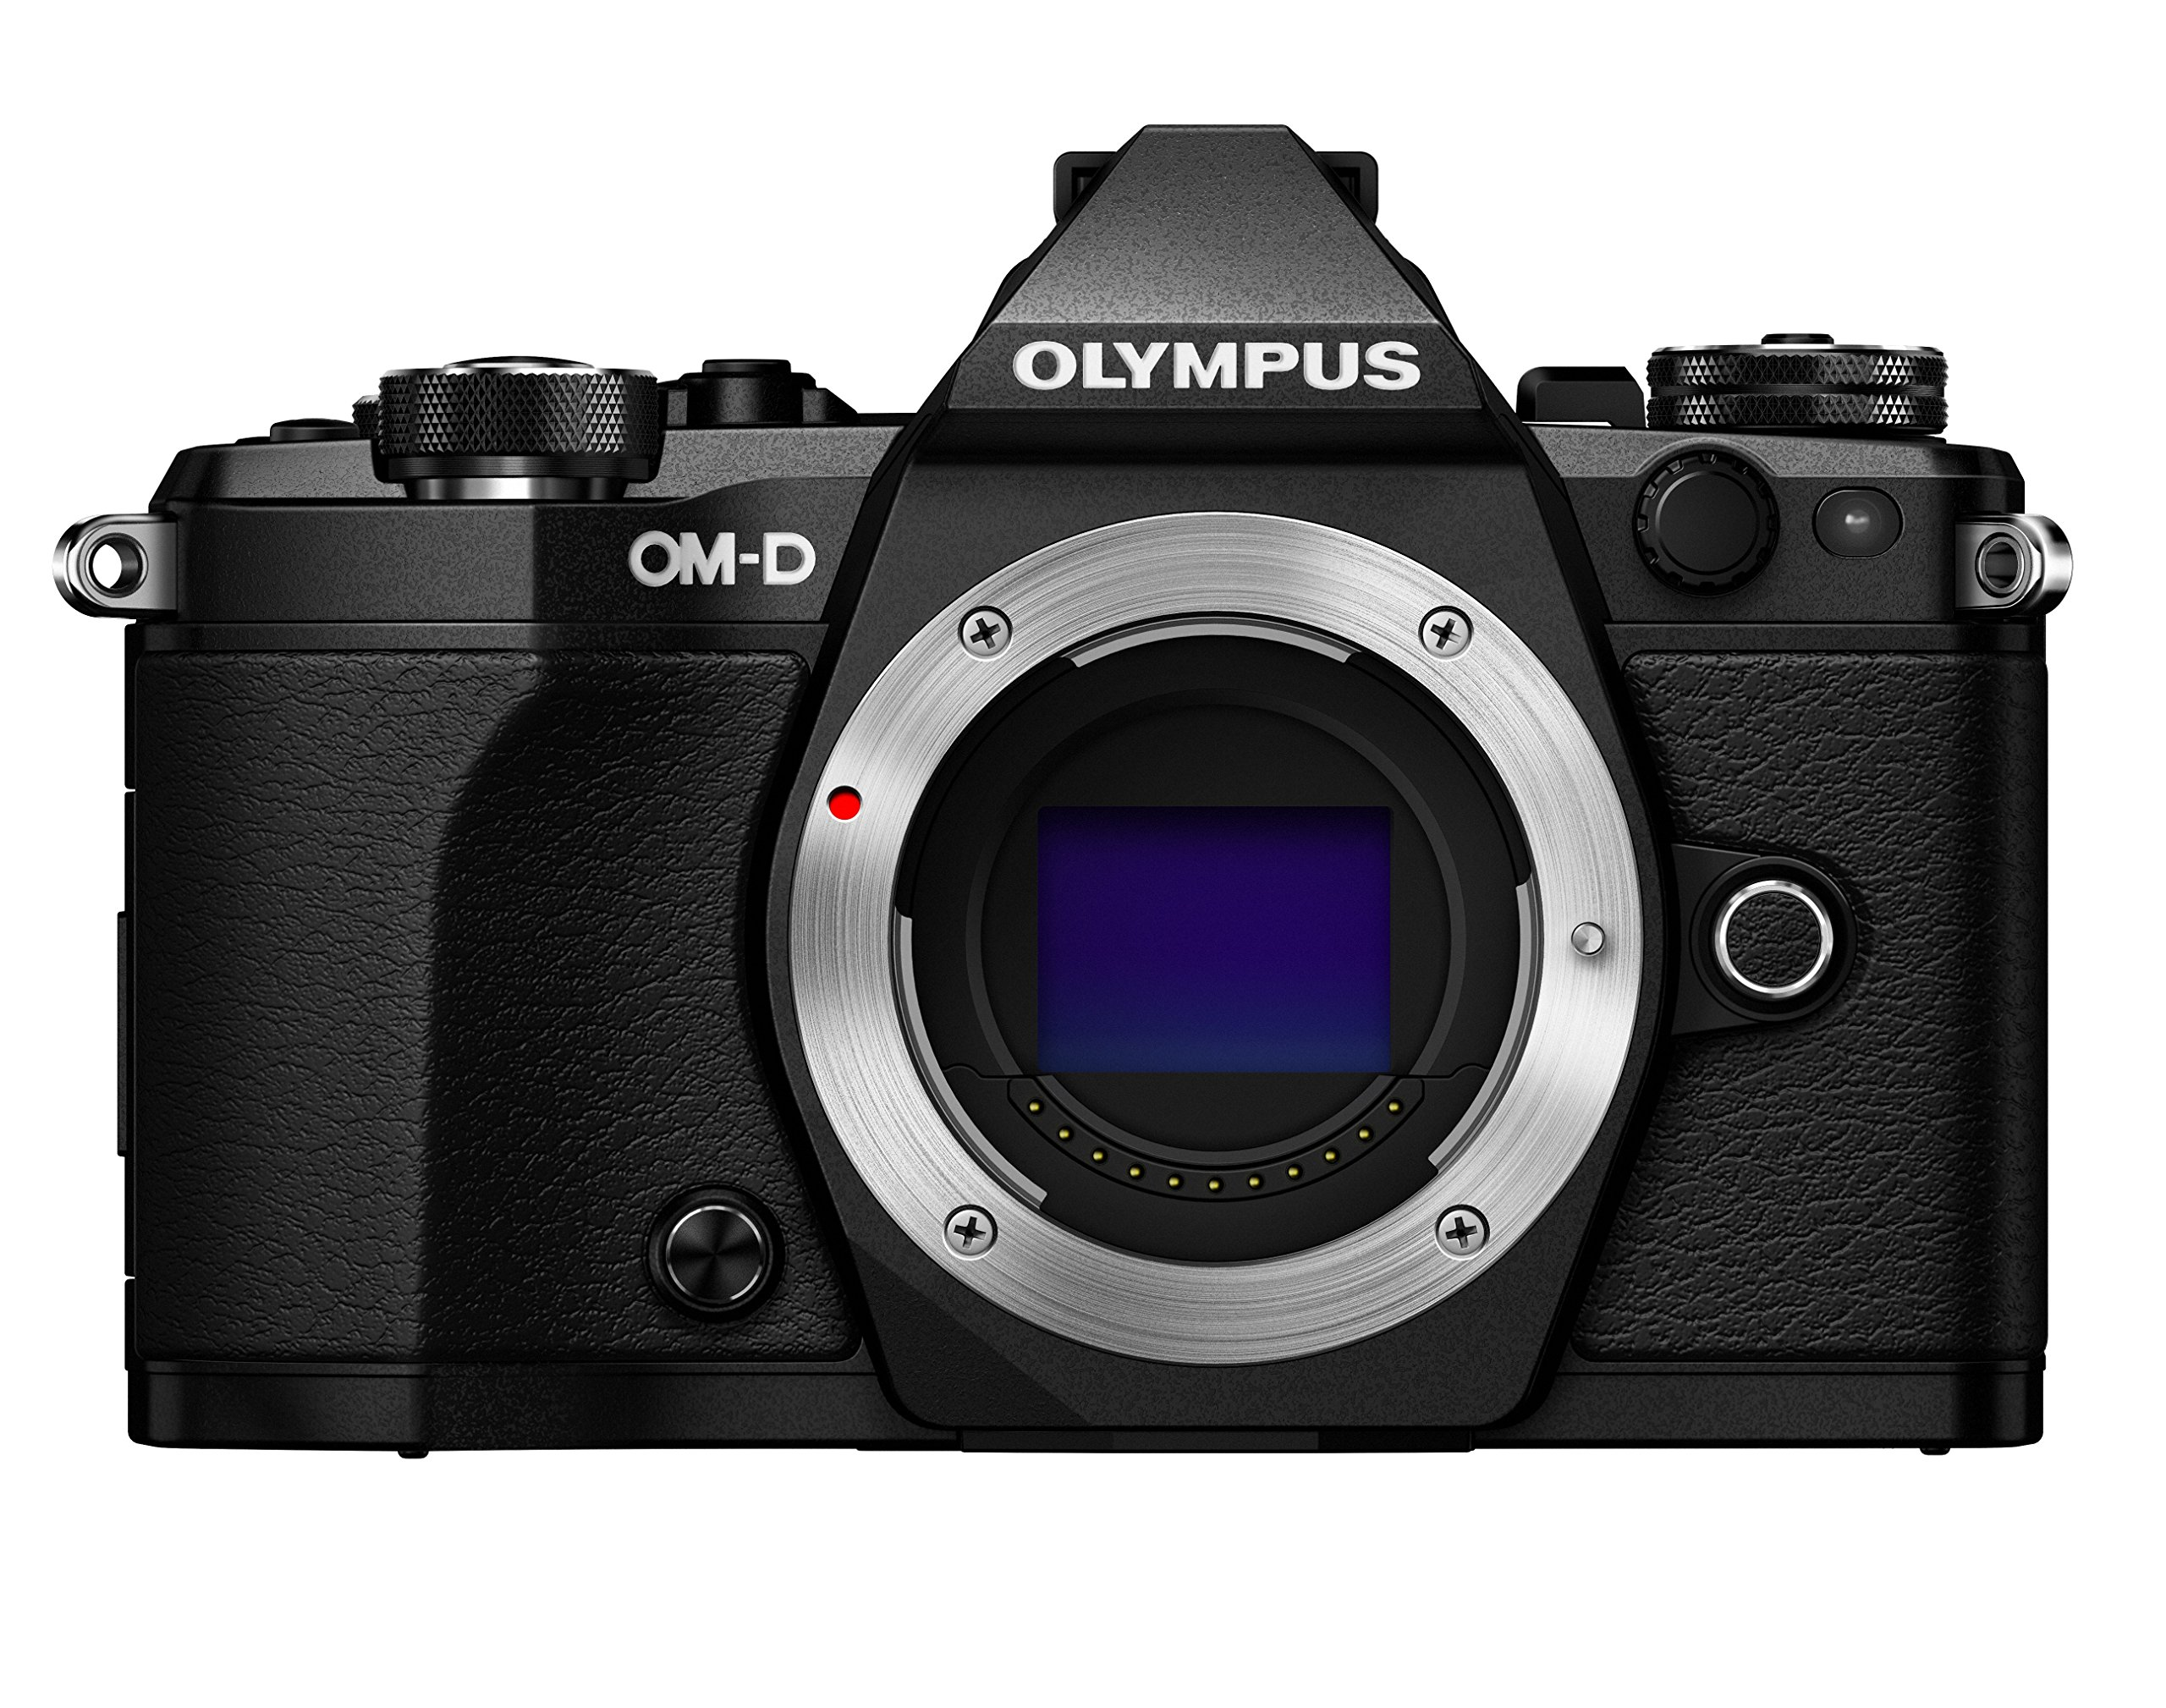 Olympus OM-D E-M5 Mark II Mirrorless Camera (Body Only), Black by Olympus